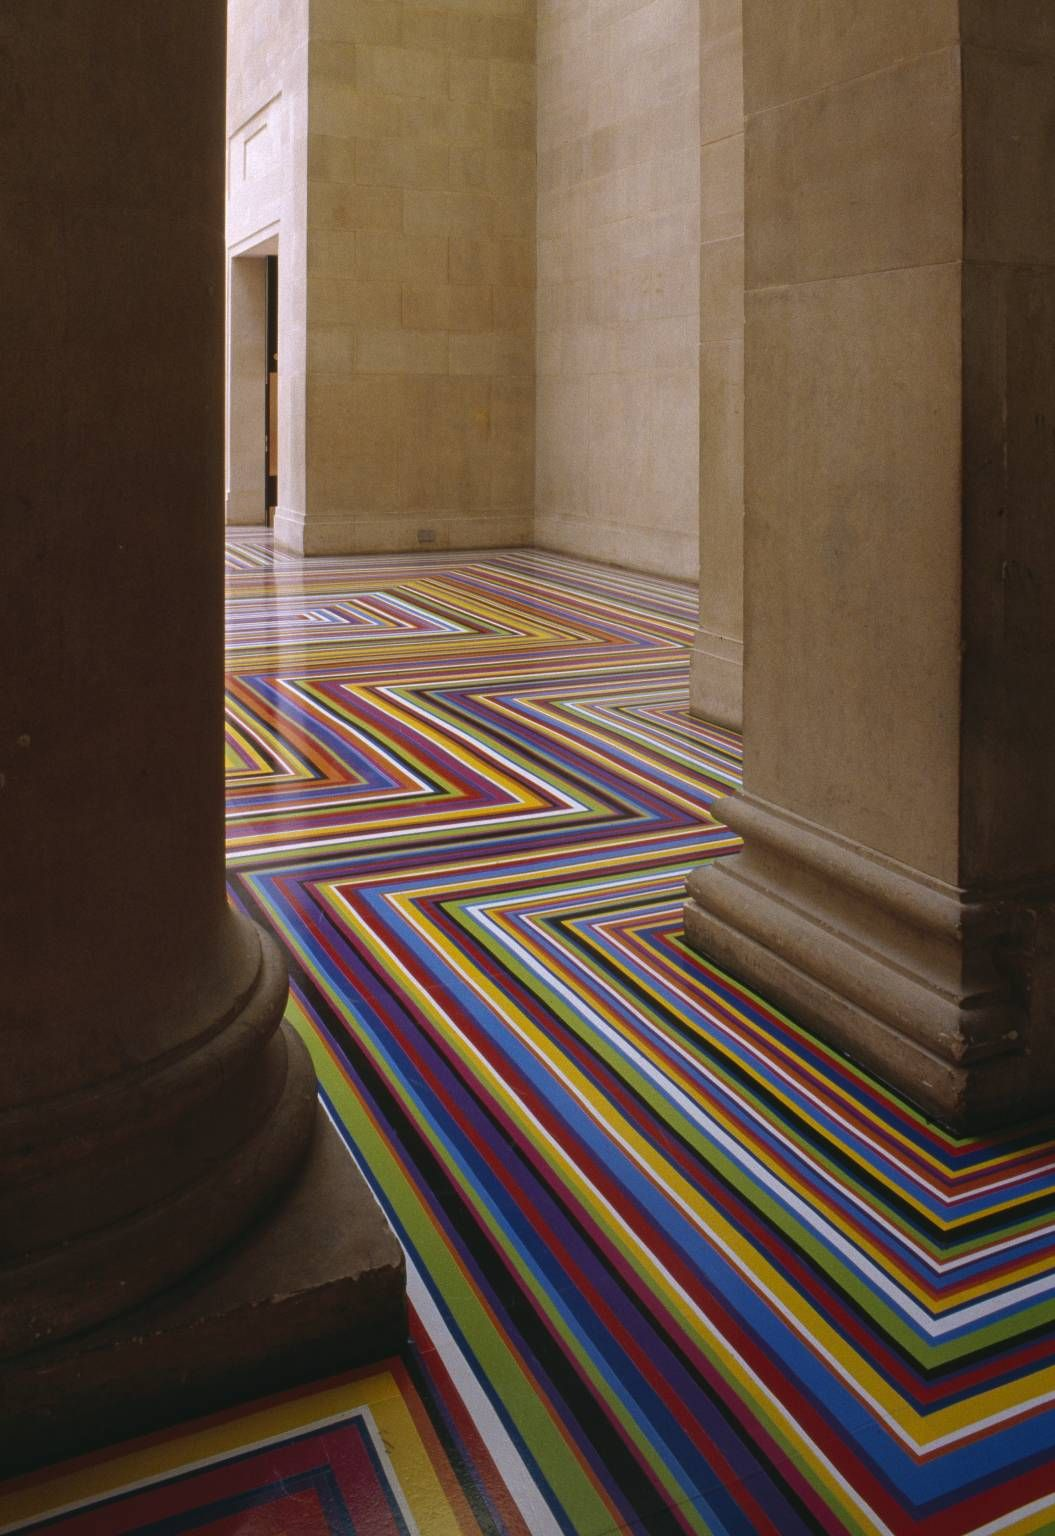 Jim Lambie - Zobop 1999, installation made with vinyl tape, Tate Britain